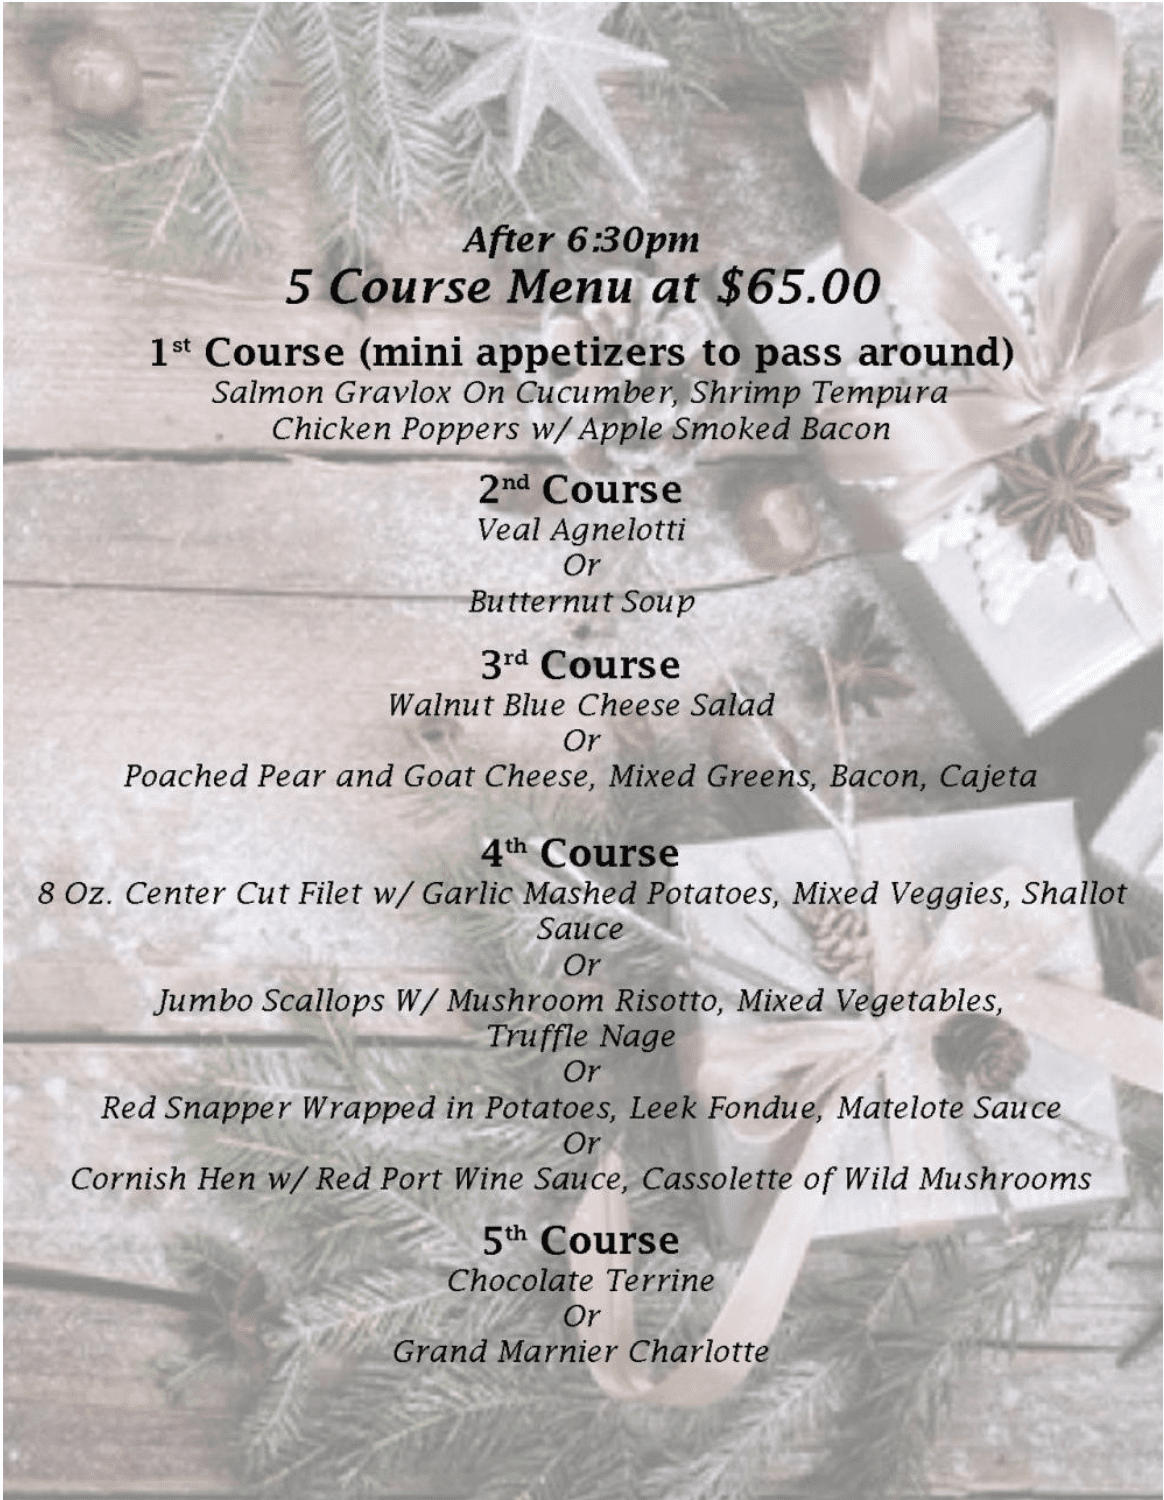 The Grill At Leon Springs Special Menu - Page 3